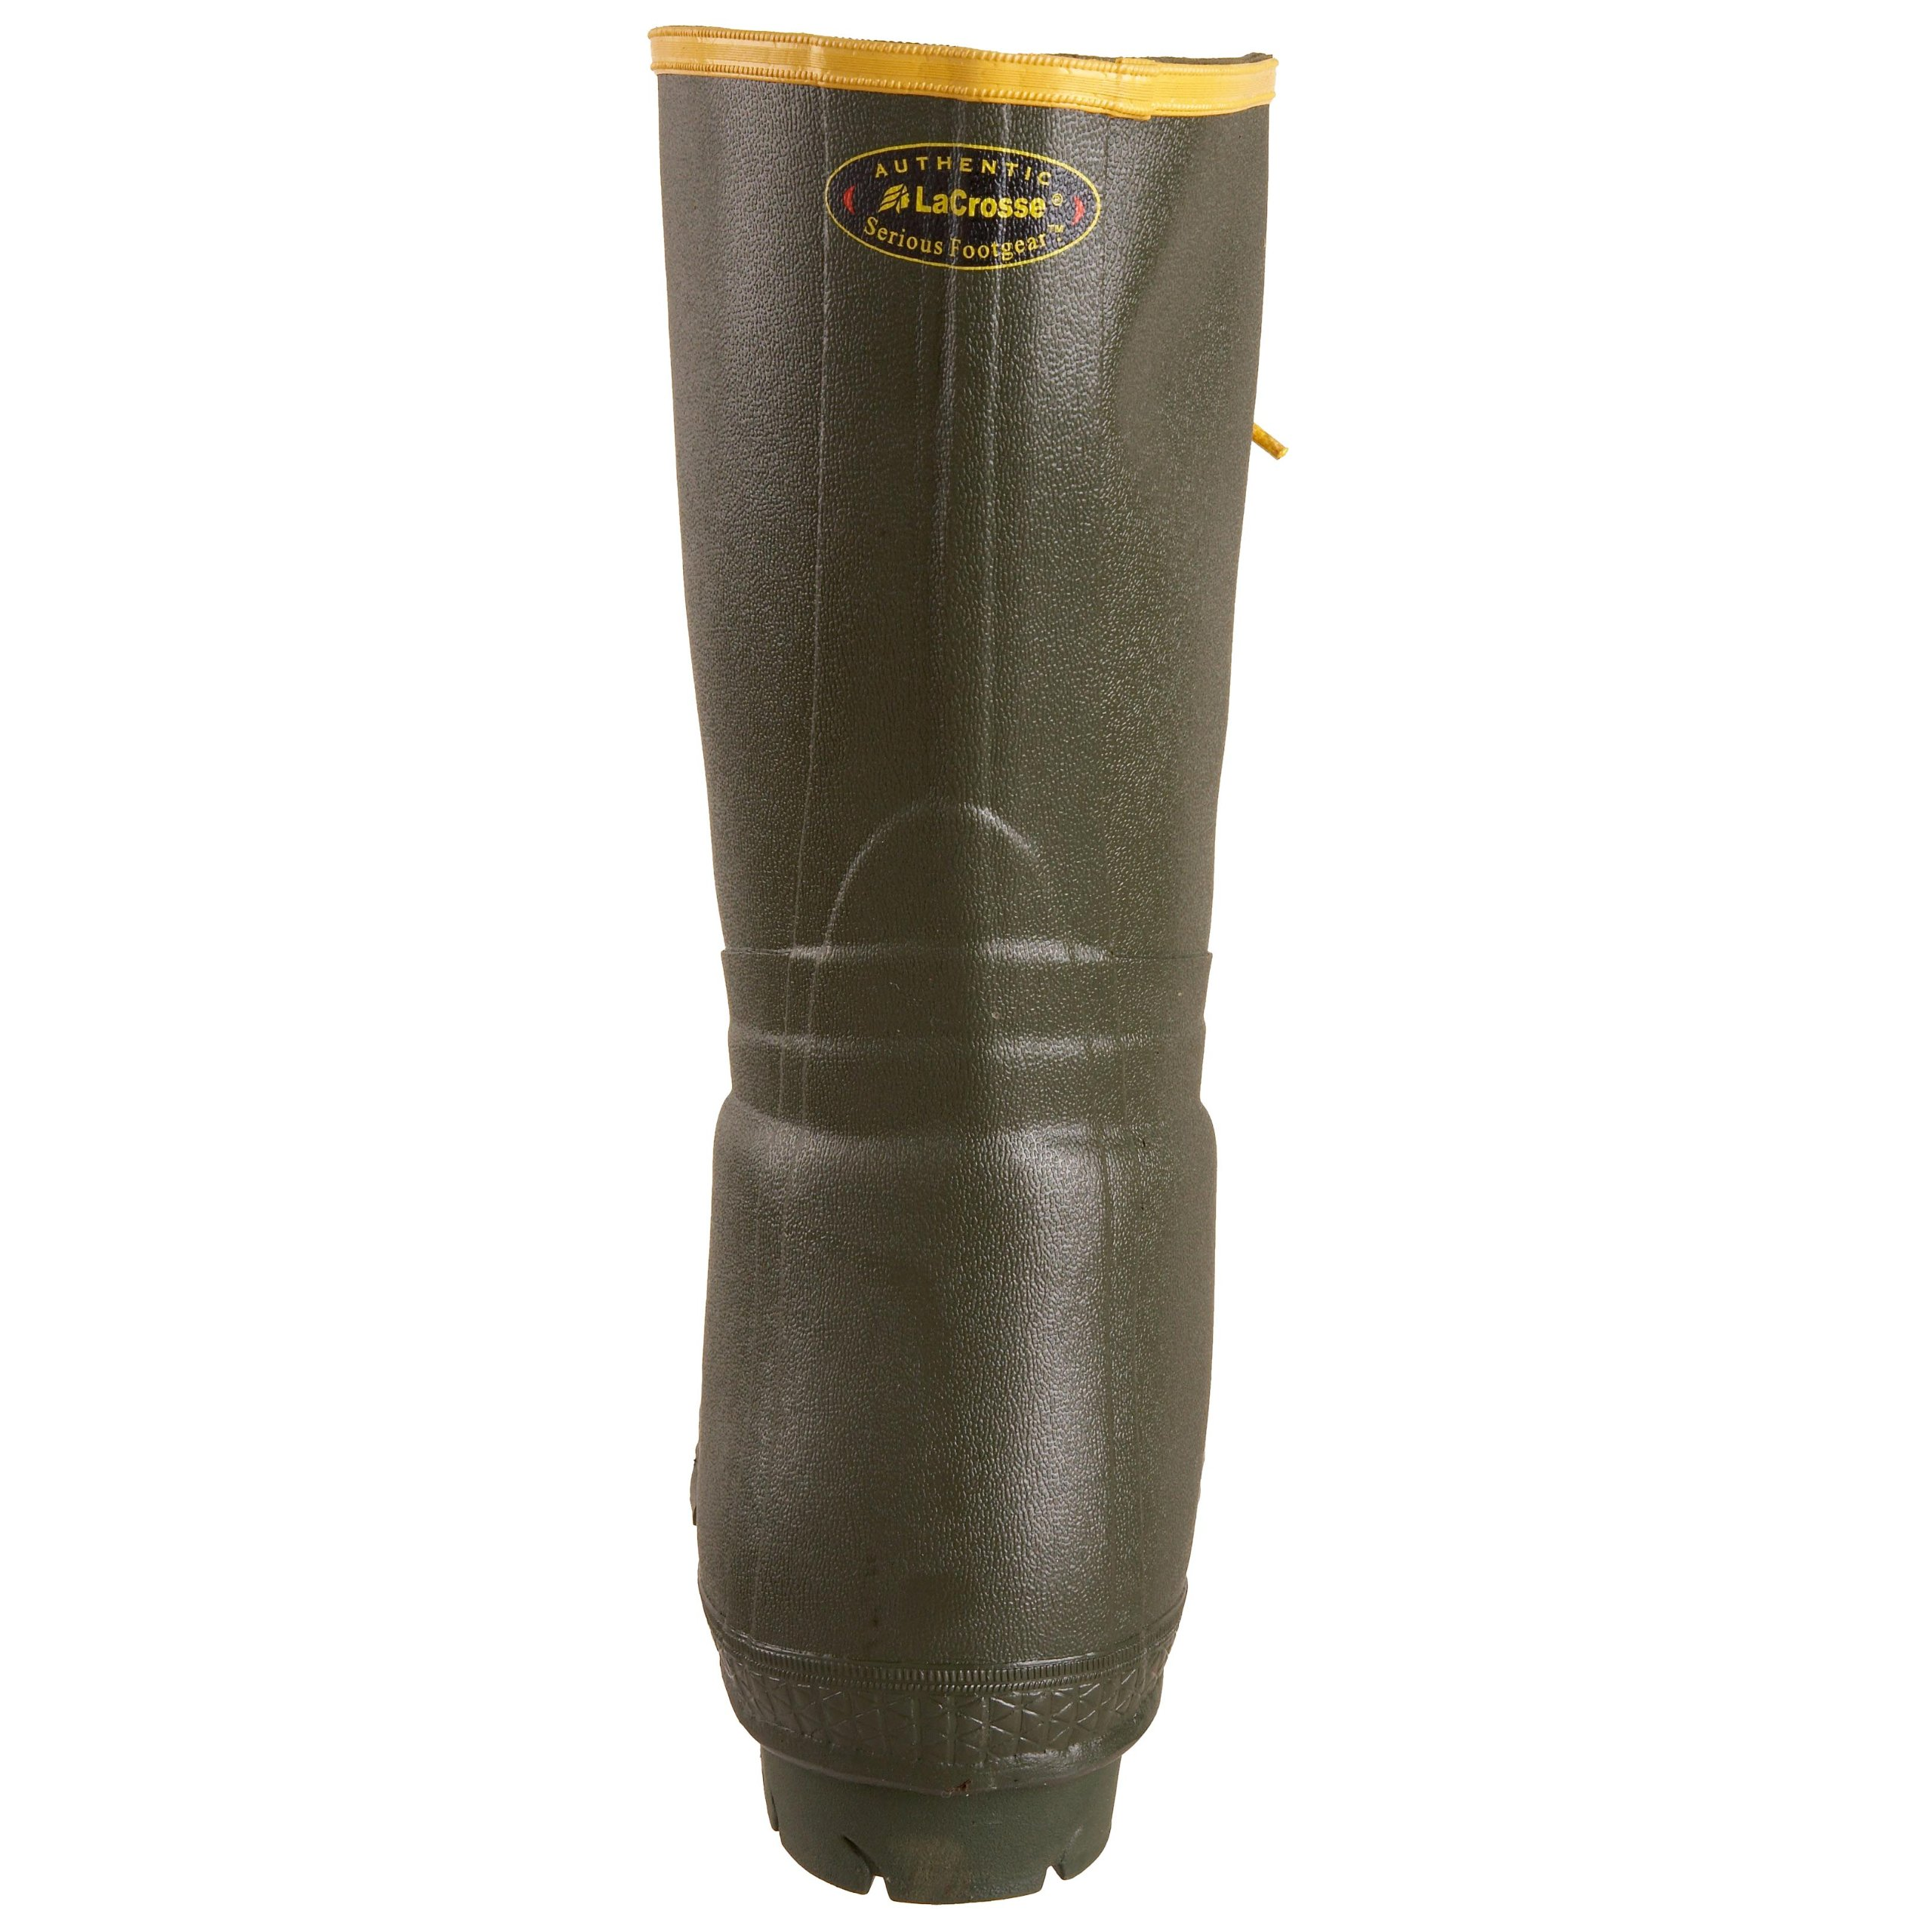 LaCrosse Men's 12'' Insulated Pac Mid-Calf Boot,Olive Drab Green,7 M US by Lacrosse (Image #2)